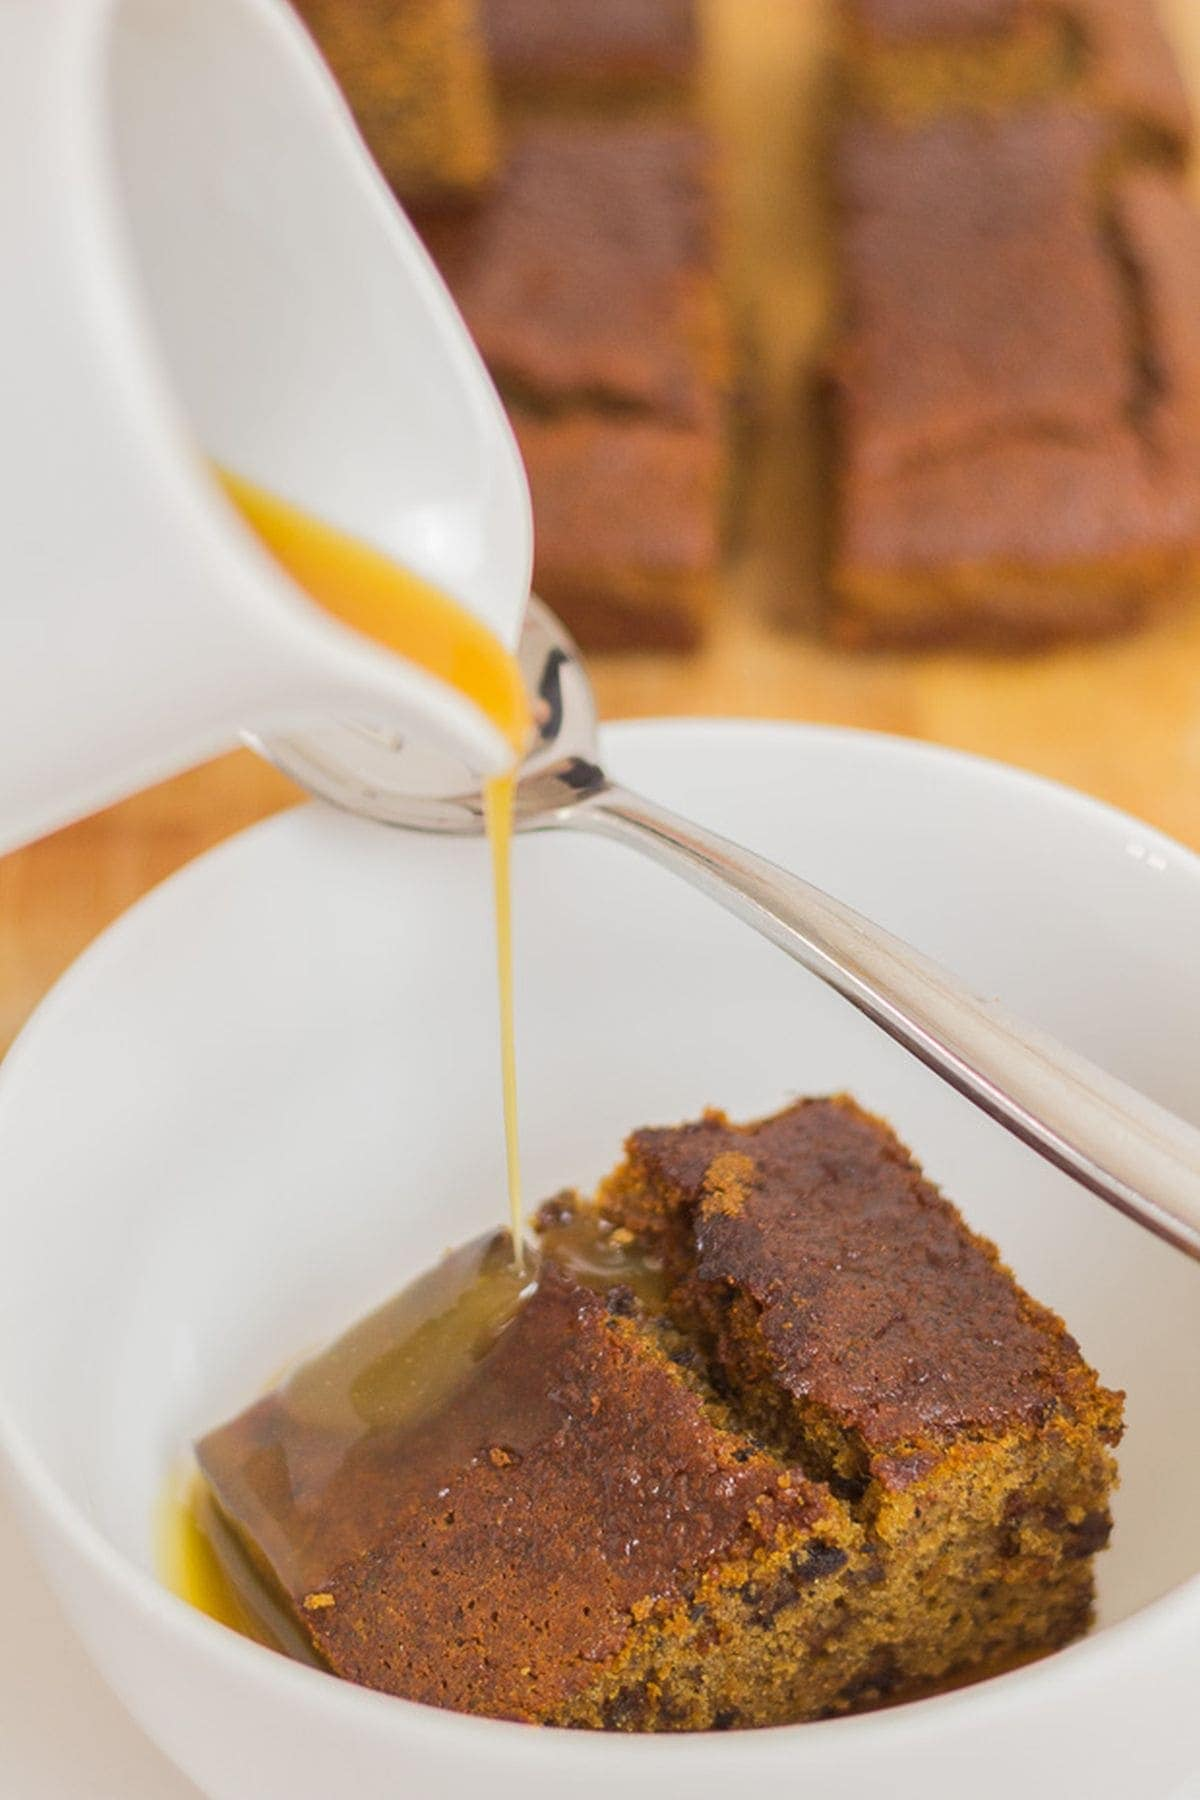 Gluten free sticky toffee pudding in a bowl with a jug pouring over the toffee sauce.